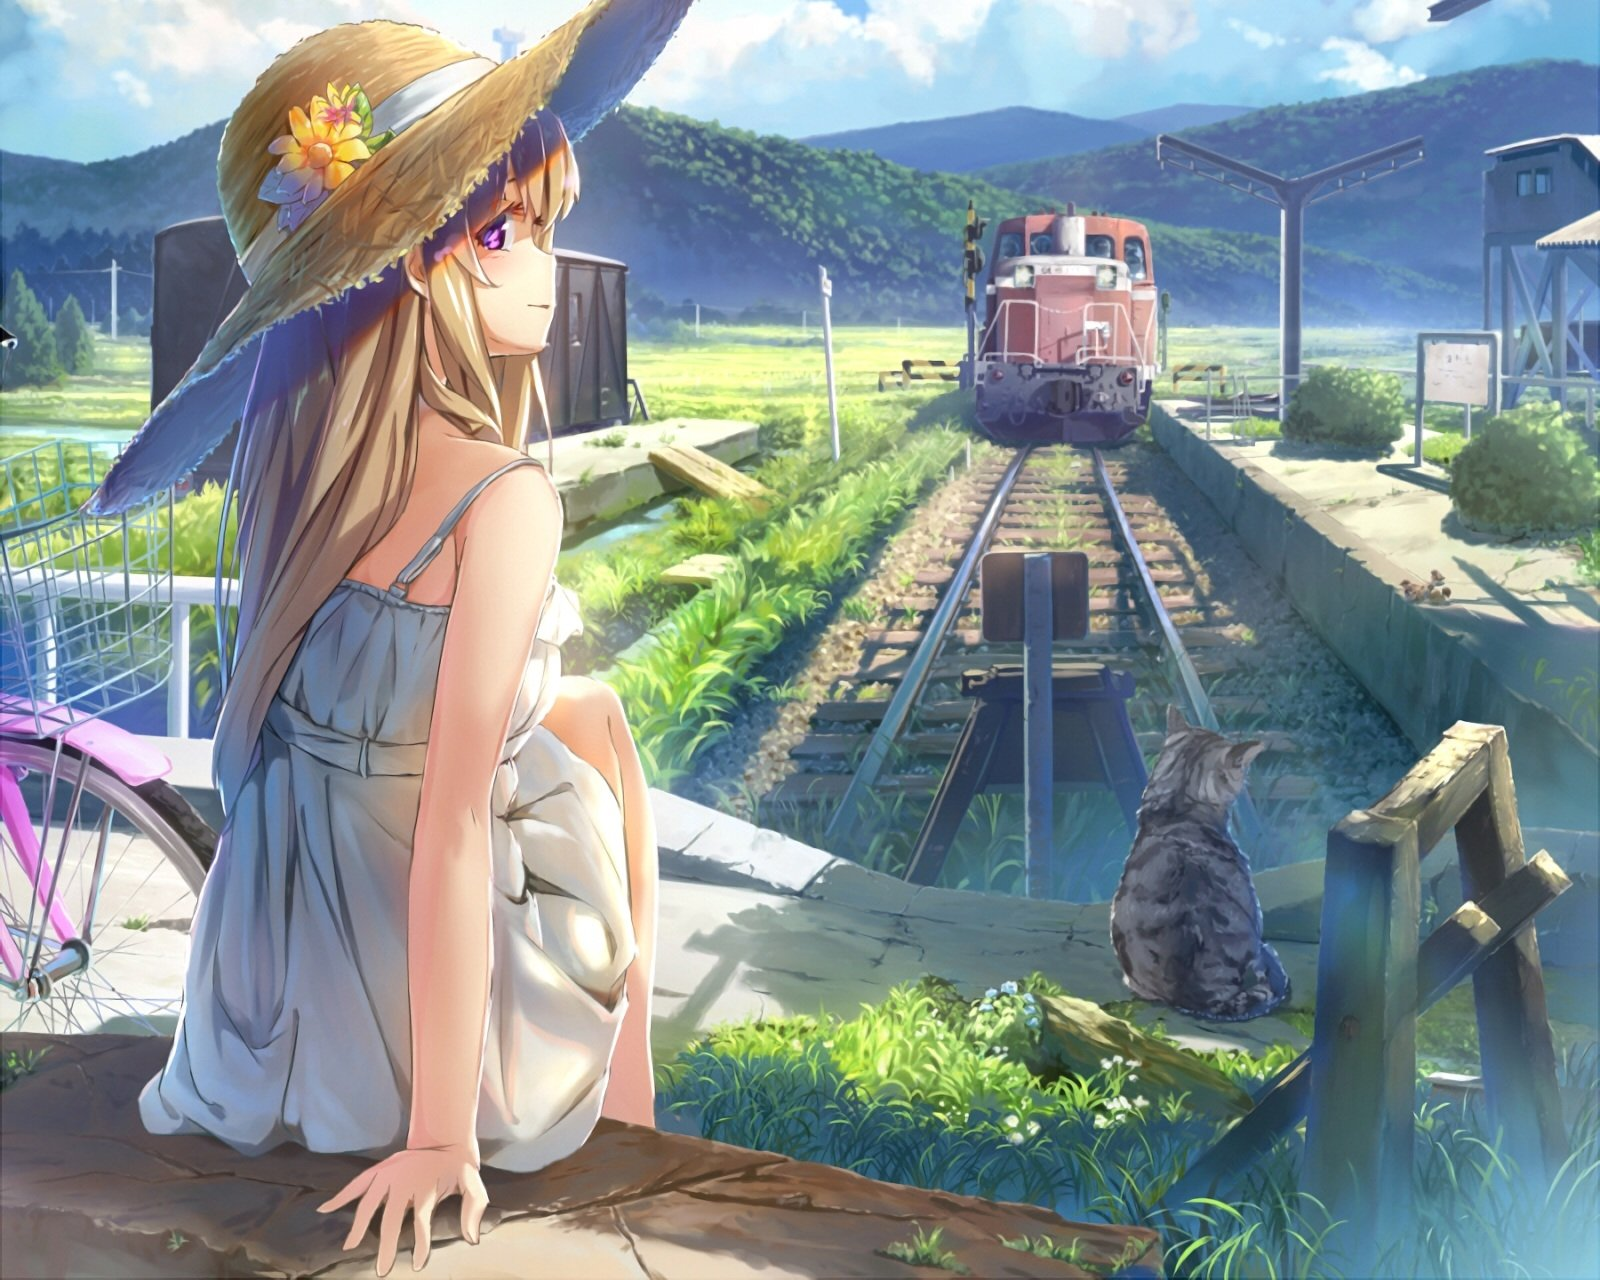 Download 1600x1280 Anime Girl, Summer Dress, Strawhat, Cat, Train